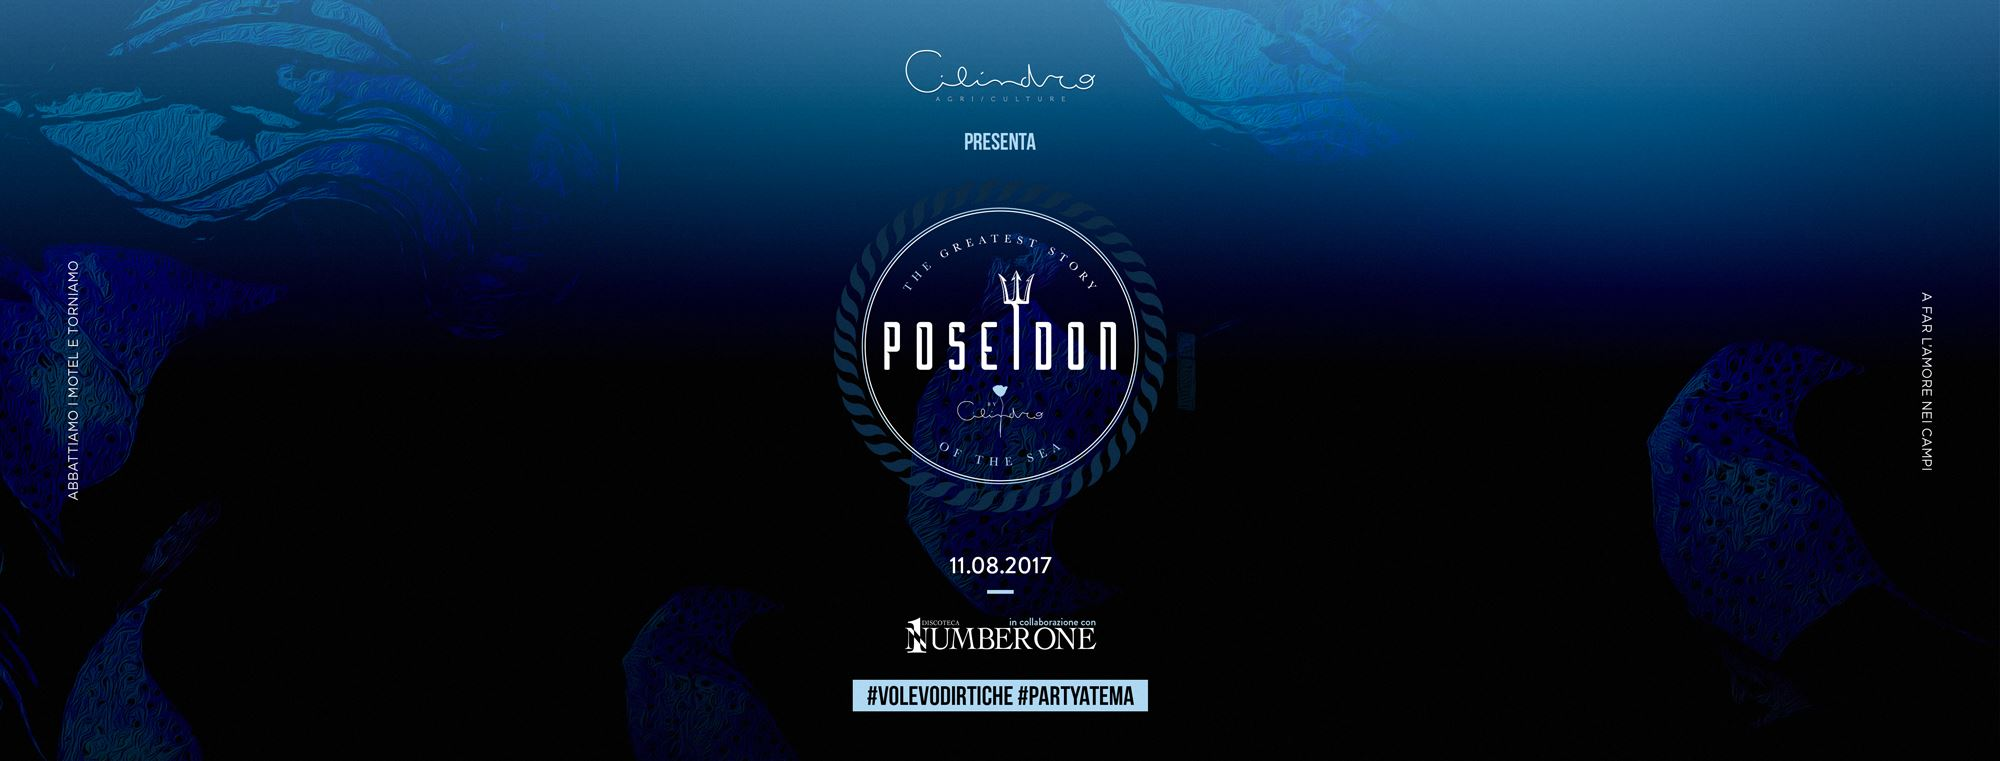 Cilindro 11.08.2017 Poseidon – The Greatest Story Of The Sea